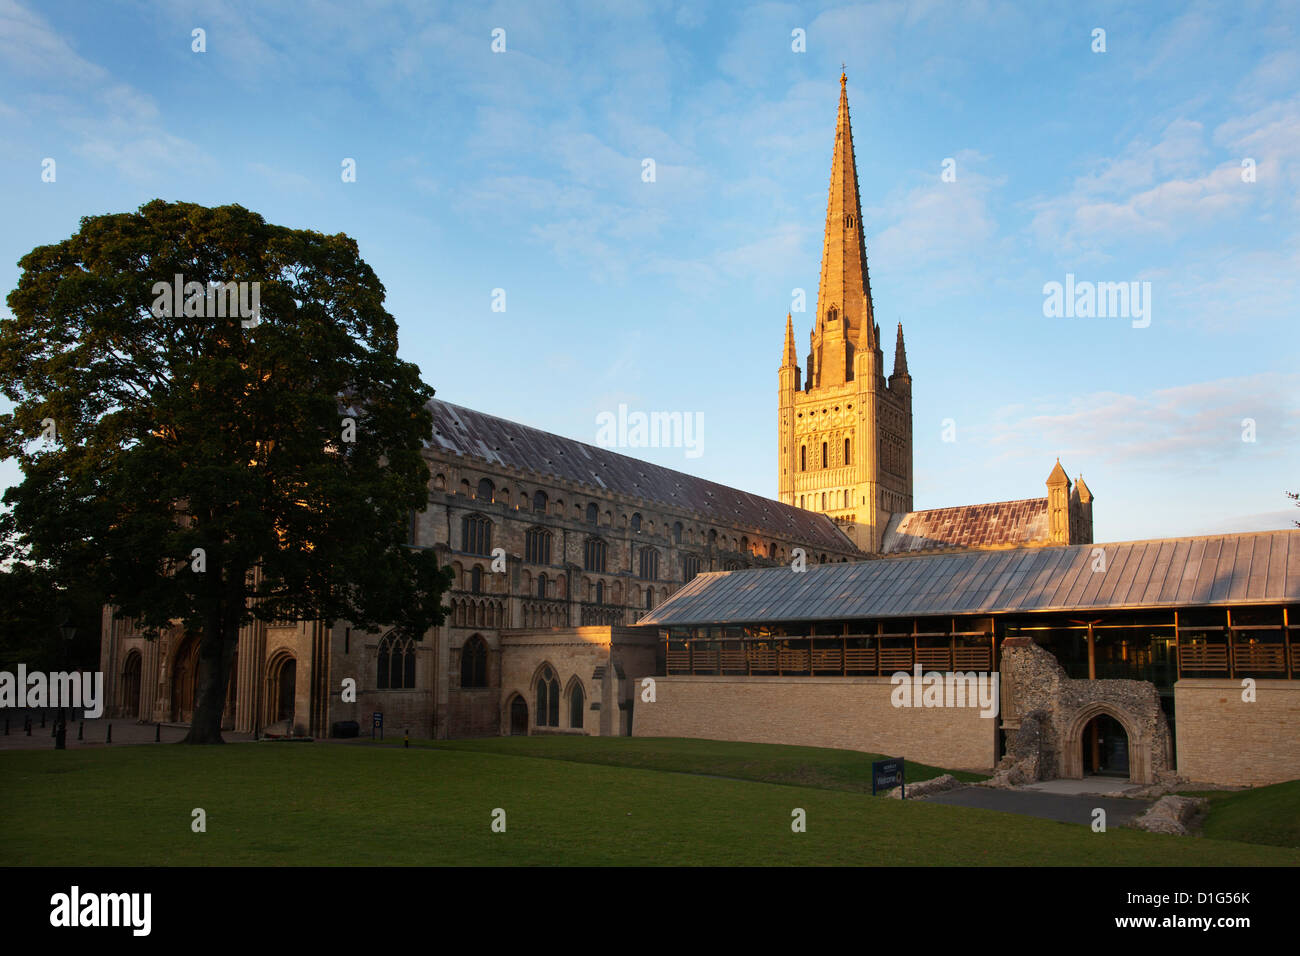 Last light on the spire at Norwich Cathedral, Norwich, Norfolk, England, United Kingdom, Europe - Stock Image